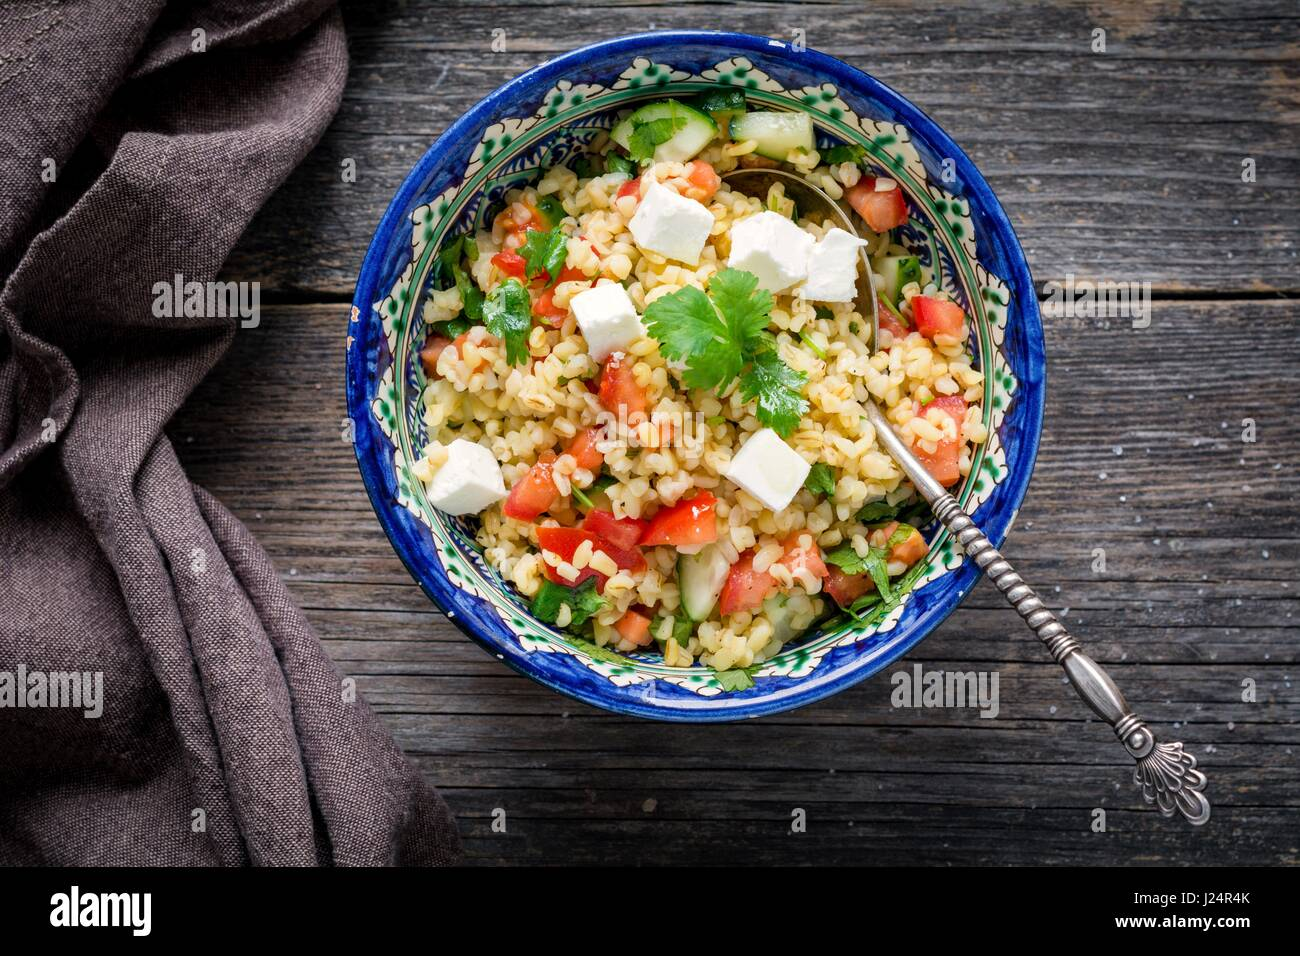 Tabbouleh salad with soft white cheese and pomegranate seeds in bowl on wooden background. Top view Stock Photo